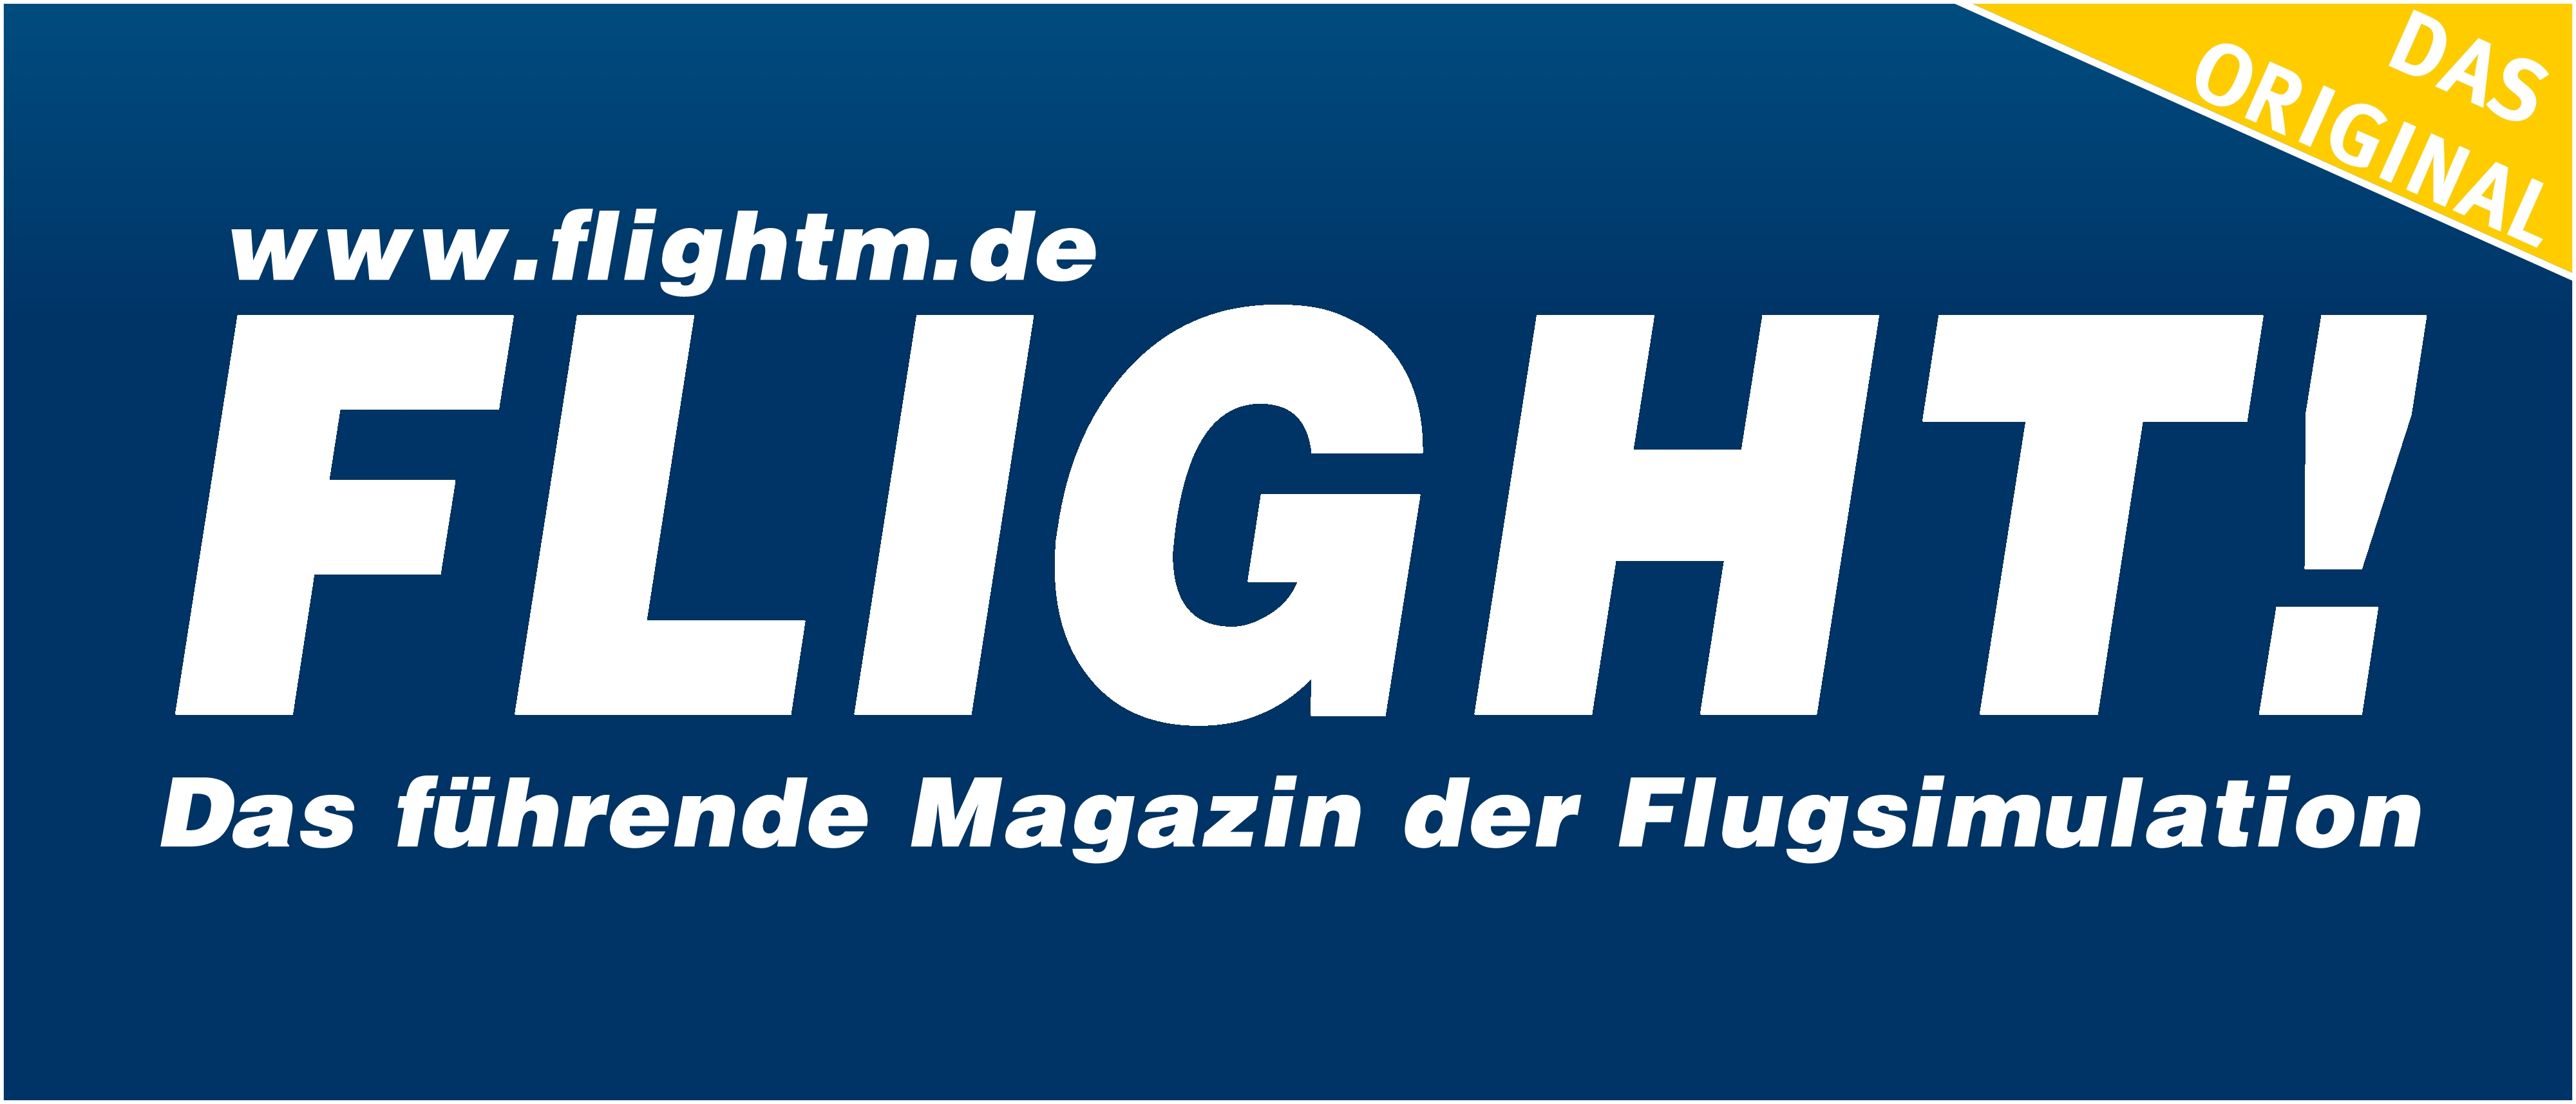 flight-hq